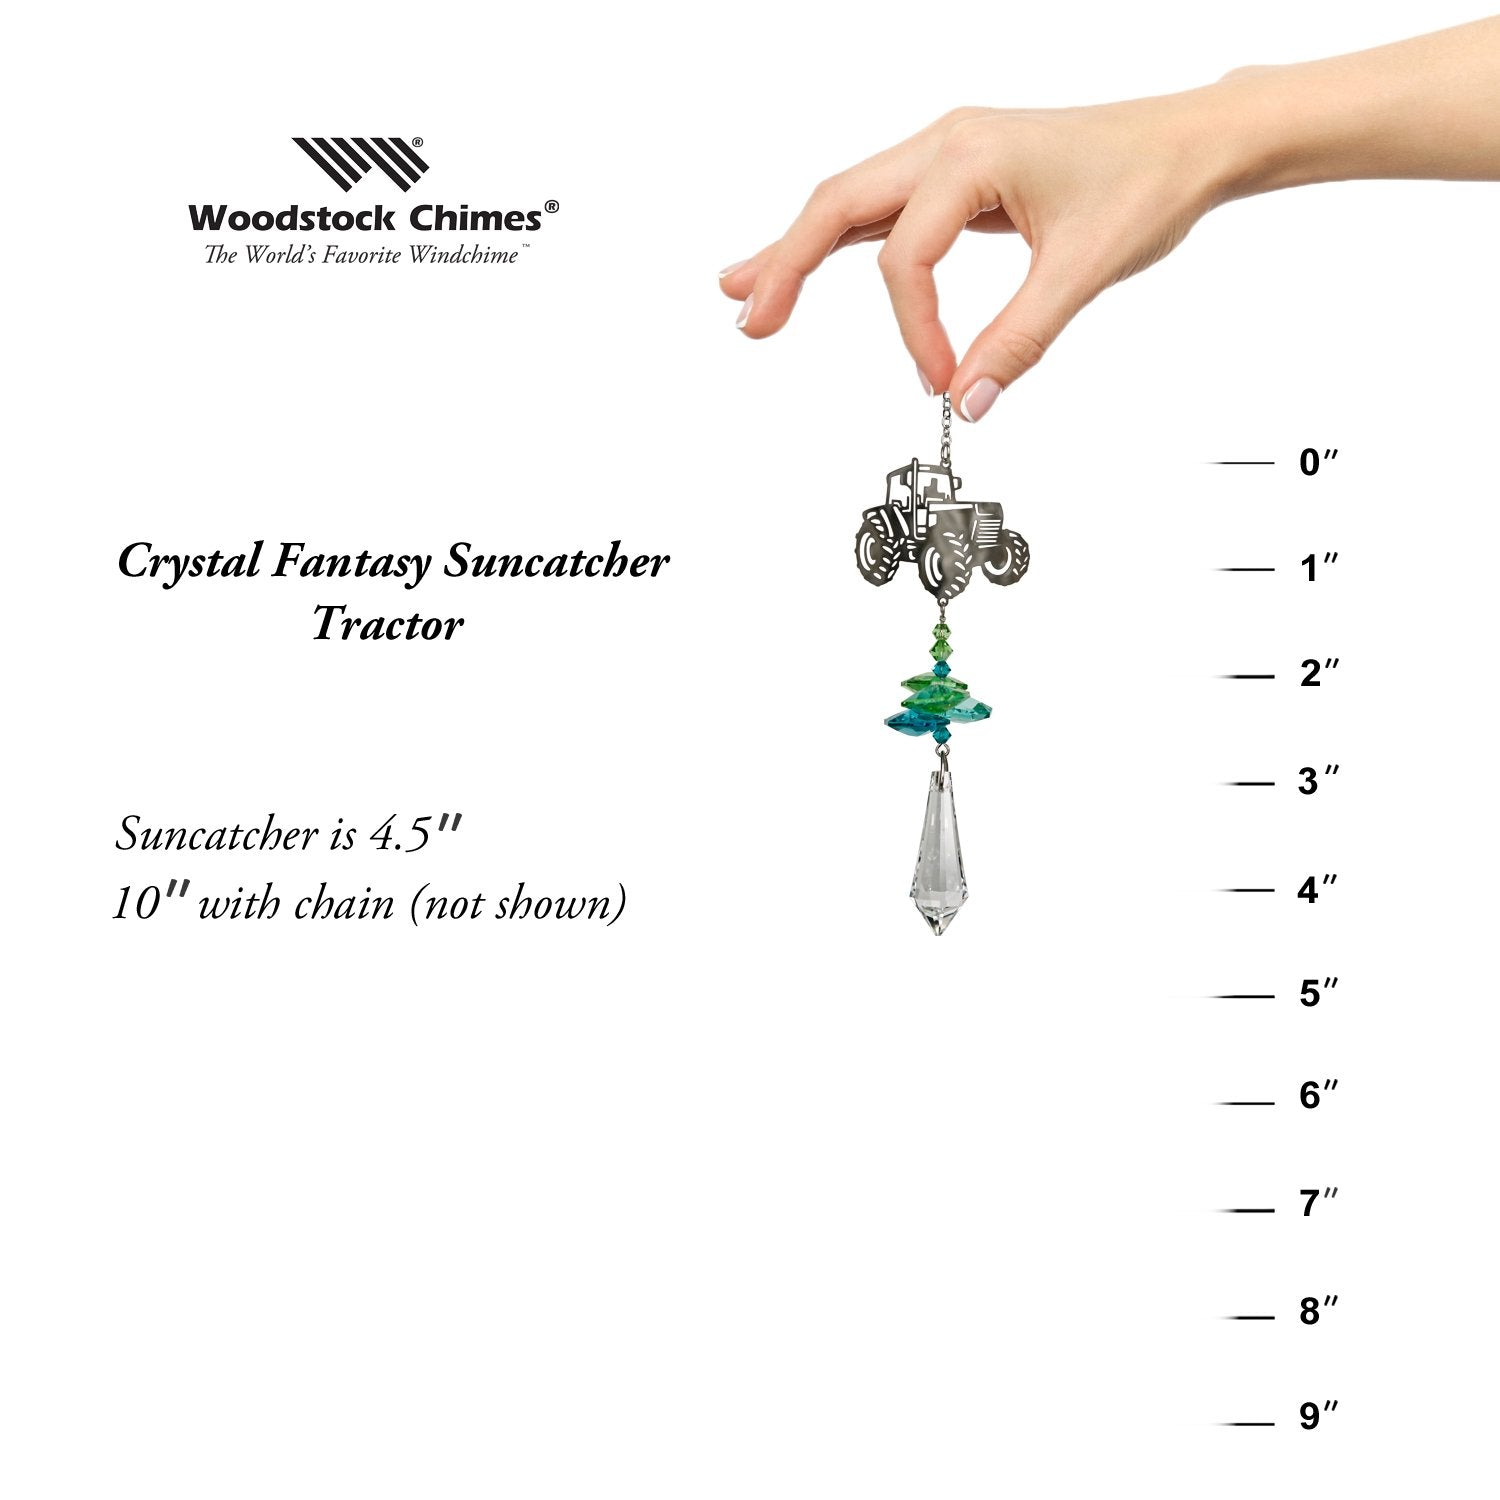 Crystal Fantasy Suncatcher - Tractor proportion image